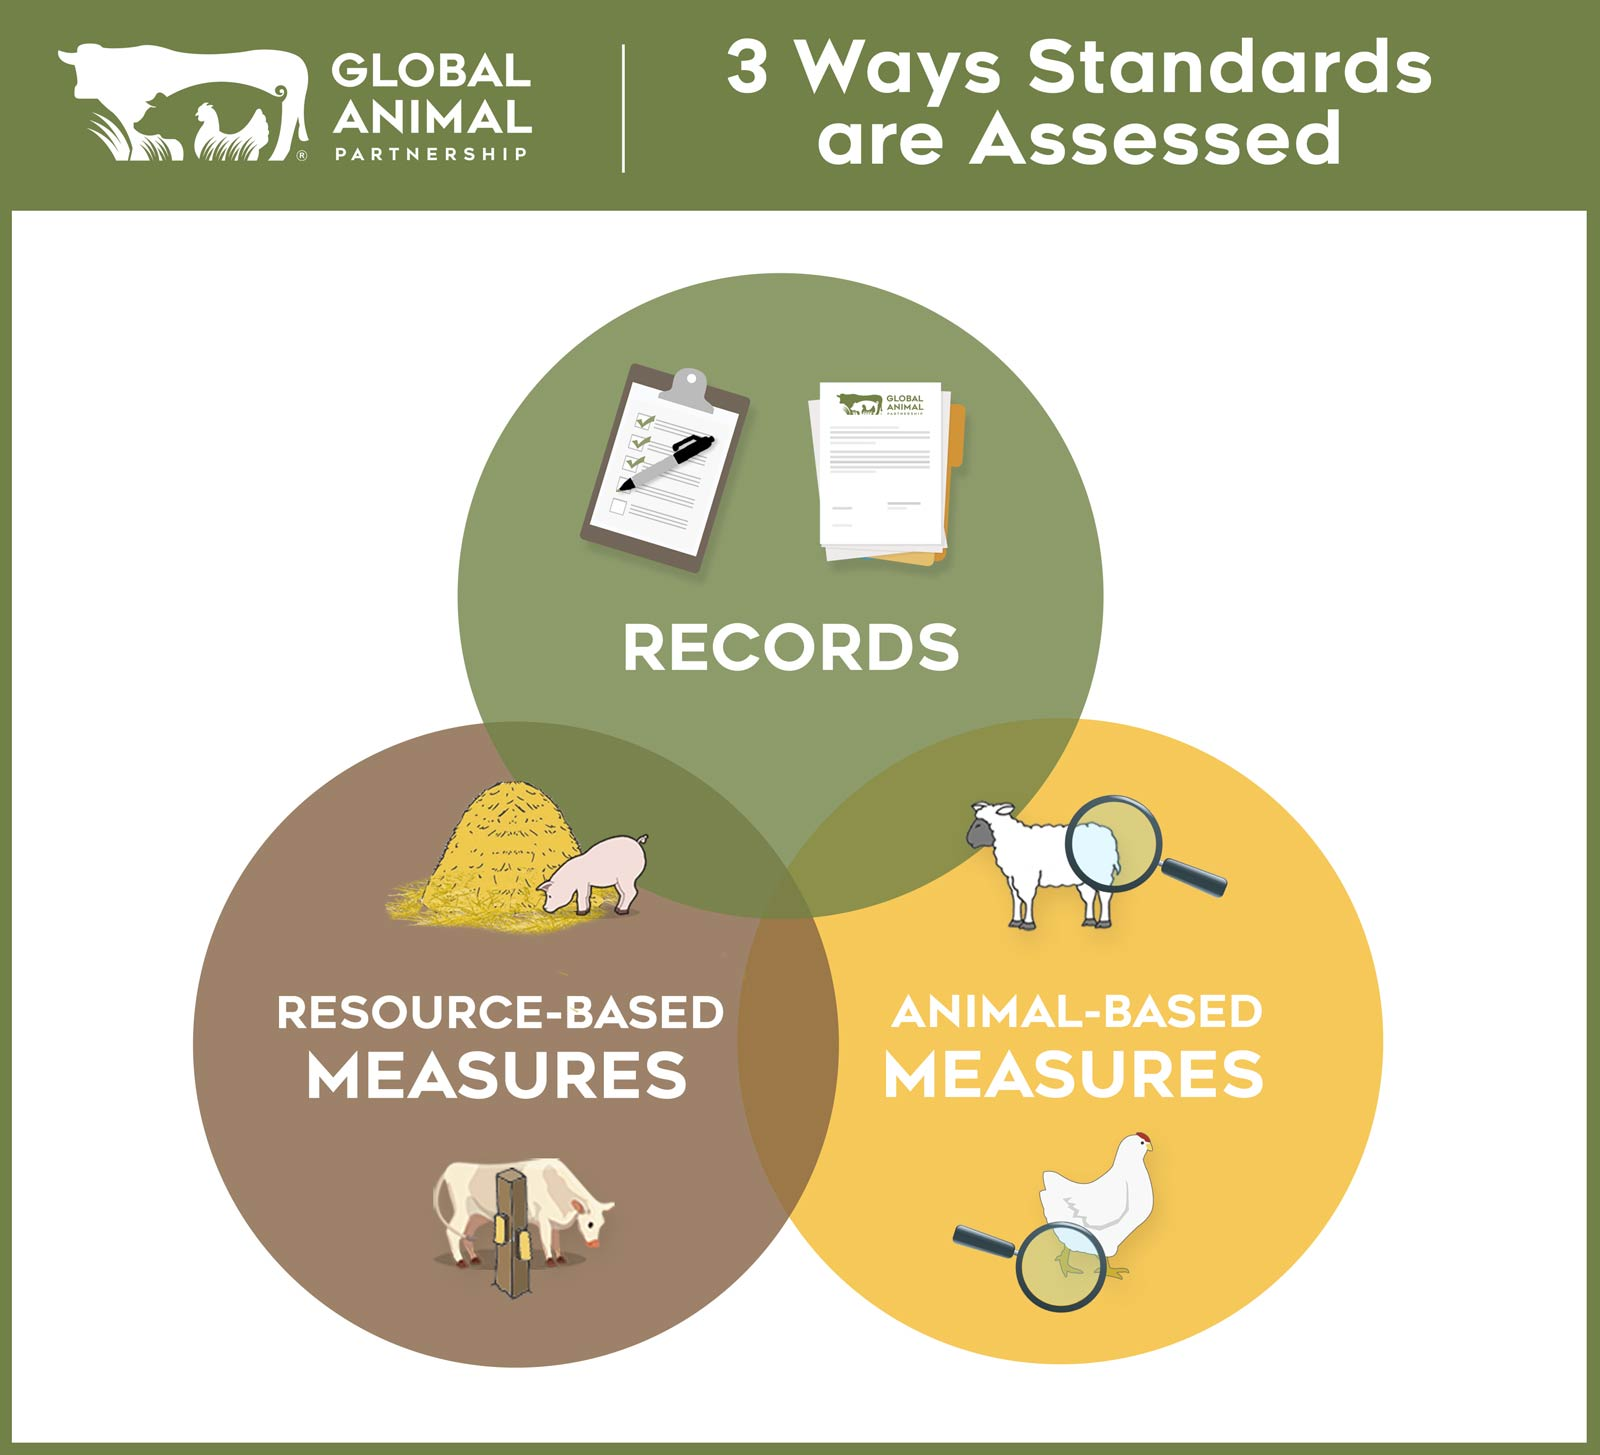 G.A.P. Farm Audit: 3 Ways Standards are Assessed